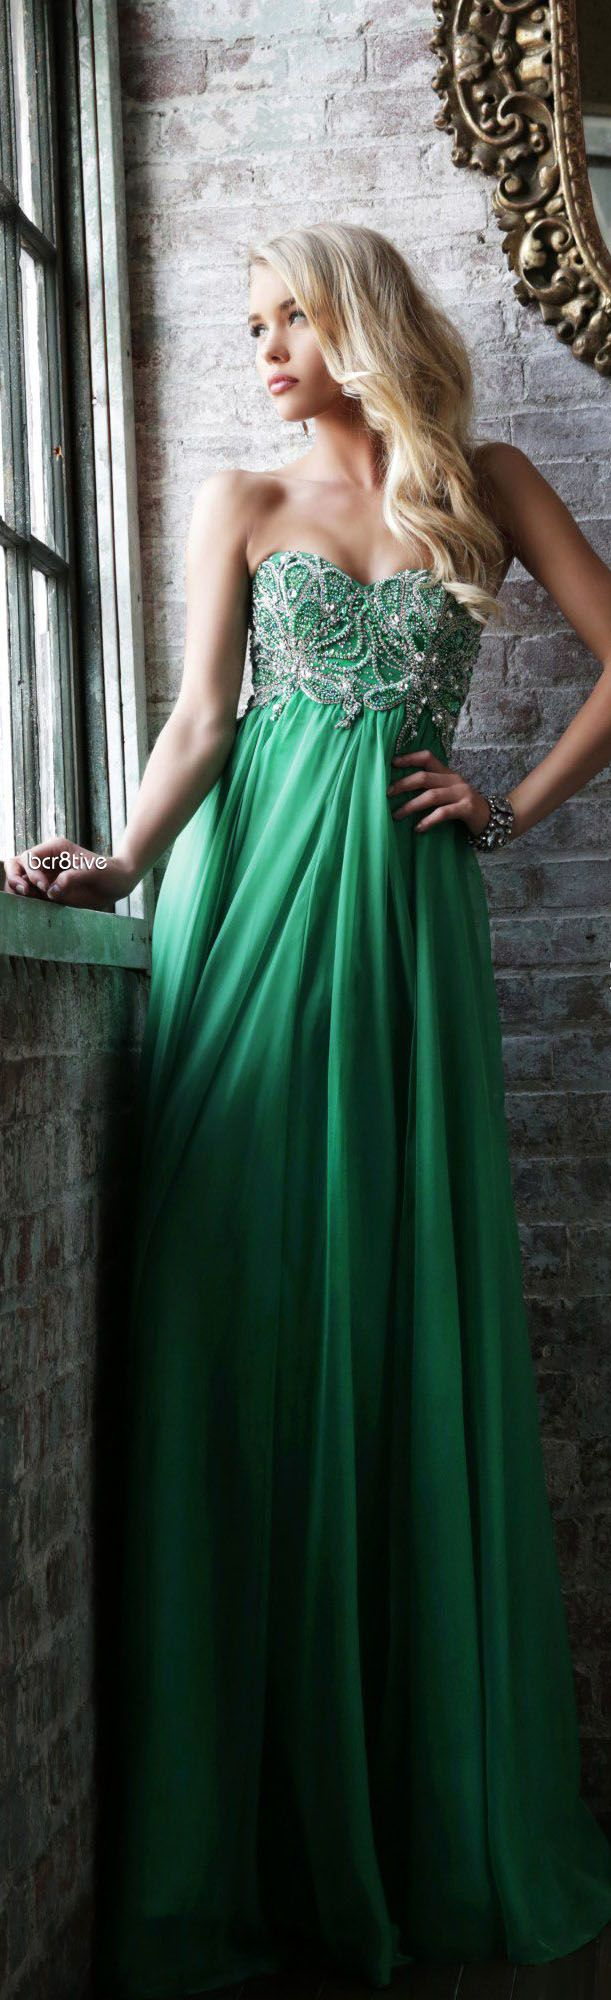 best pretty dresses images on pinterest evening gowns classy